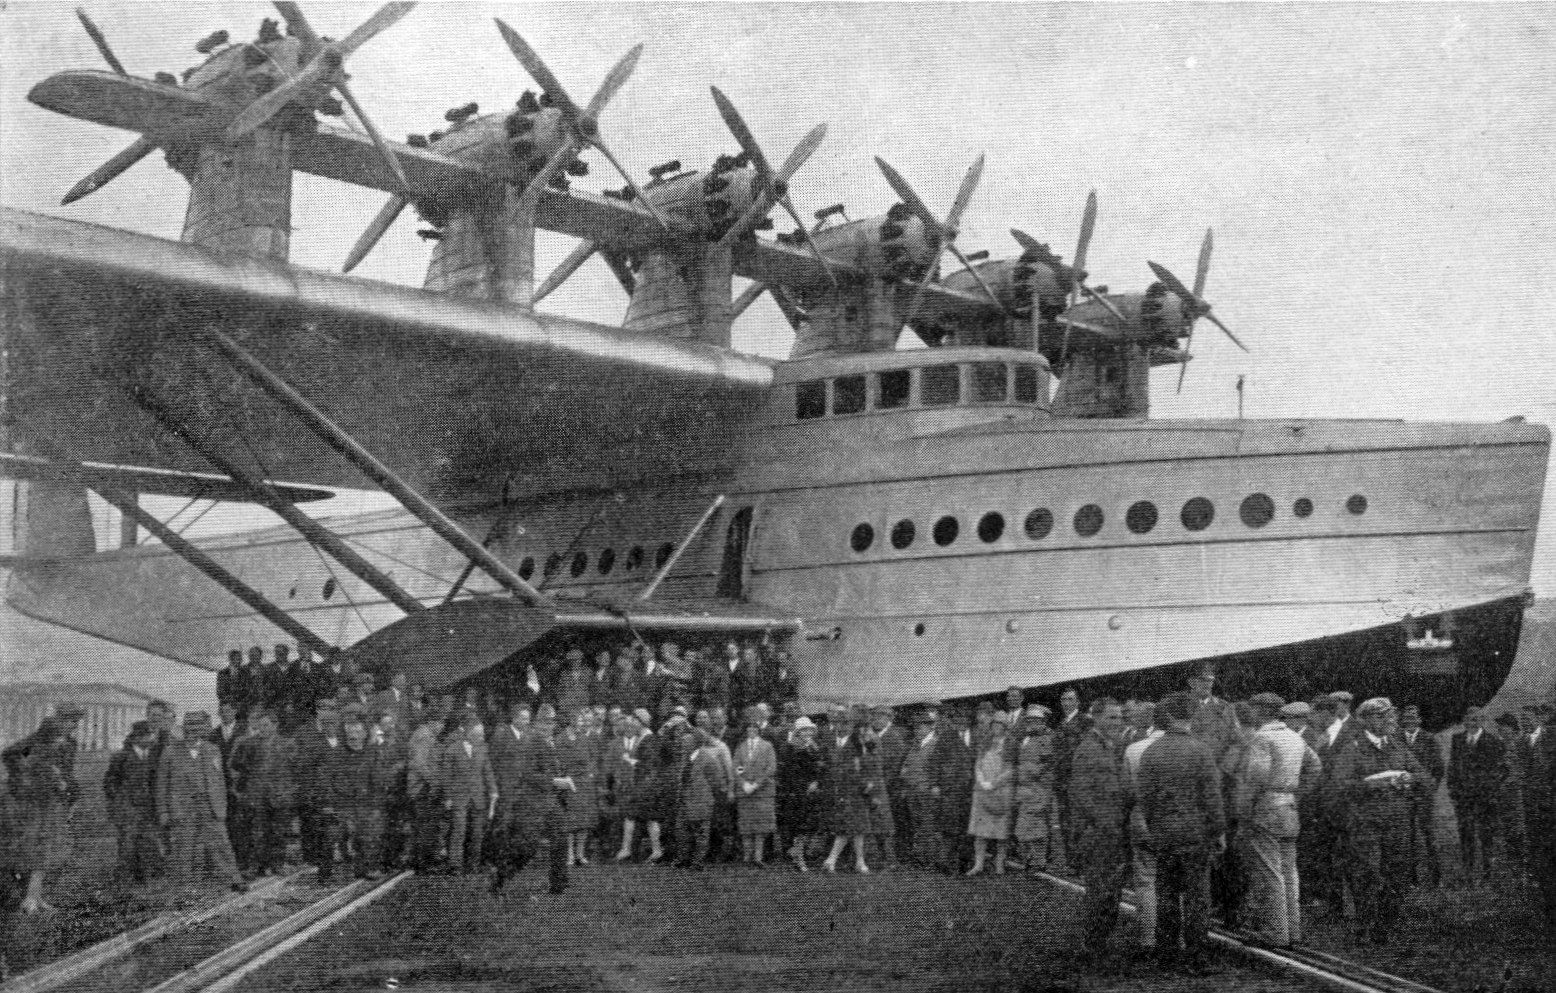 Meanwhile in the real world: Crowds pose with the Dornier Do X aircraft circa mid-1930s. The largest flying boat in the world when first produced in 1929. The luxurious passenger accommodation approached the standards of transatlantic liners.